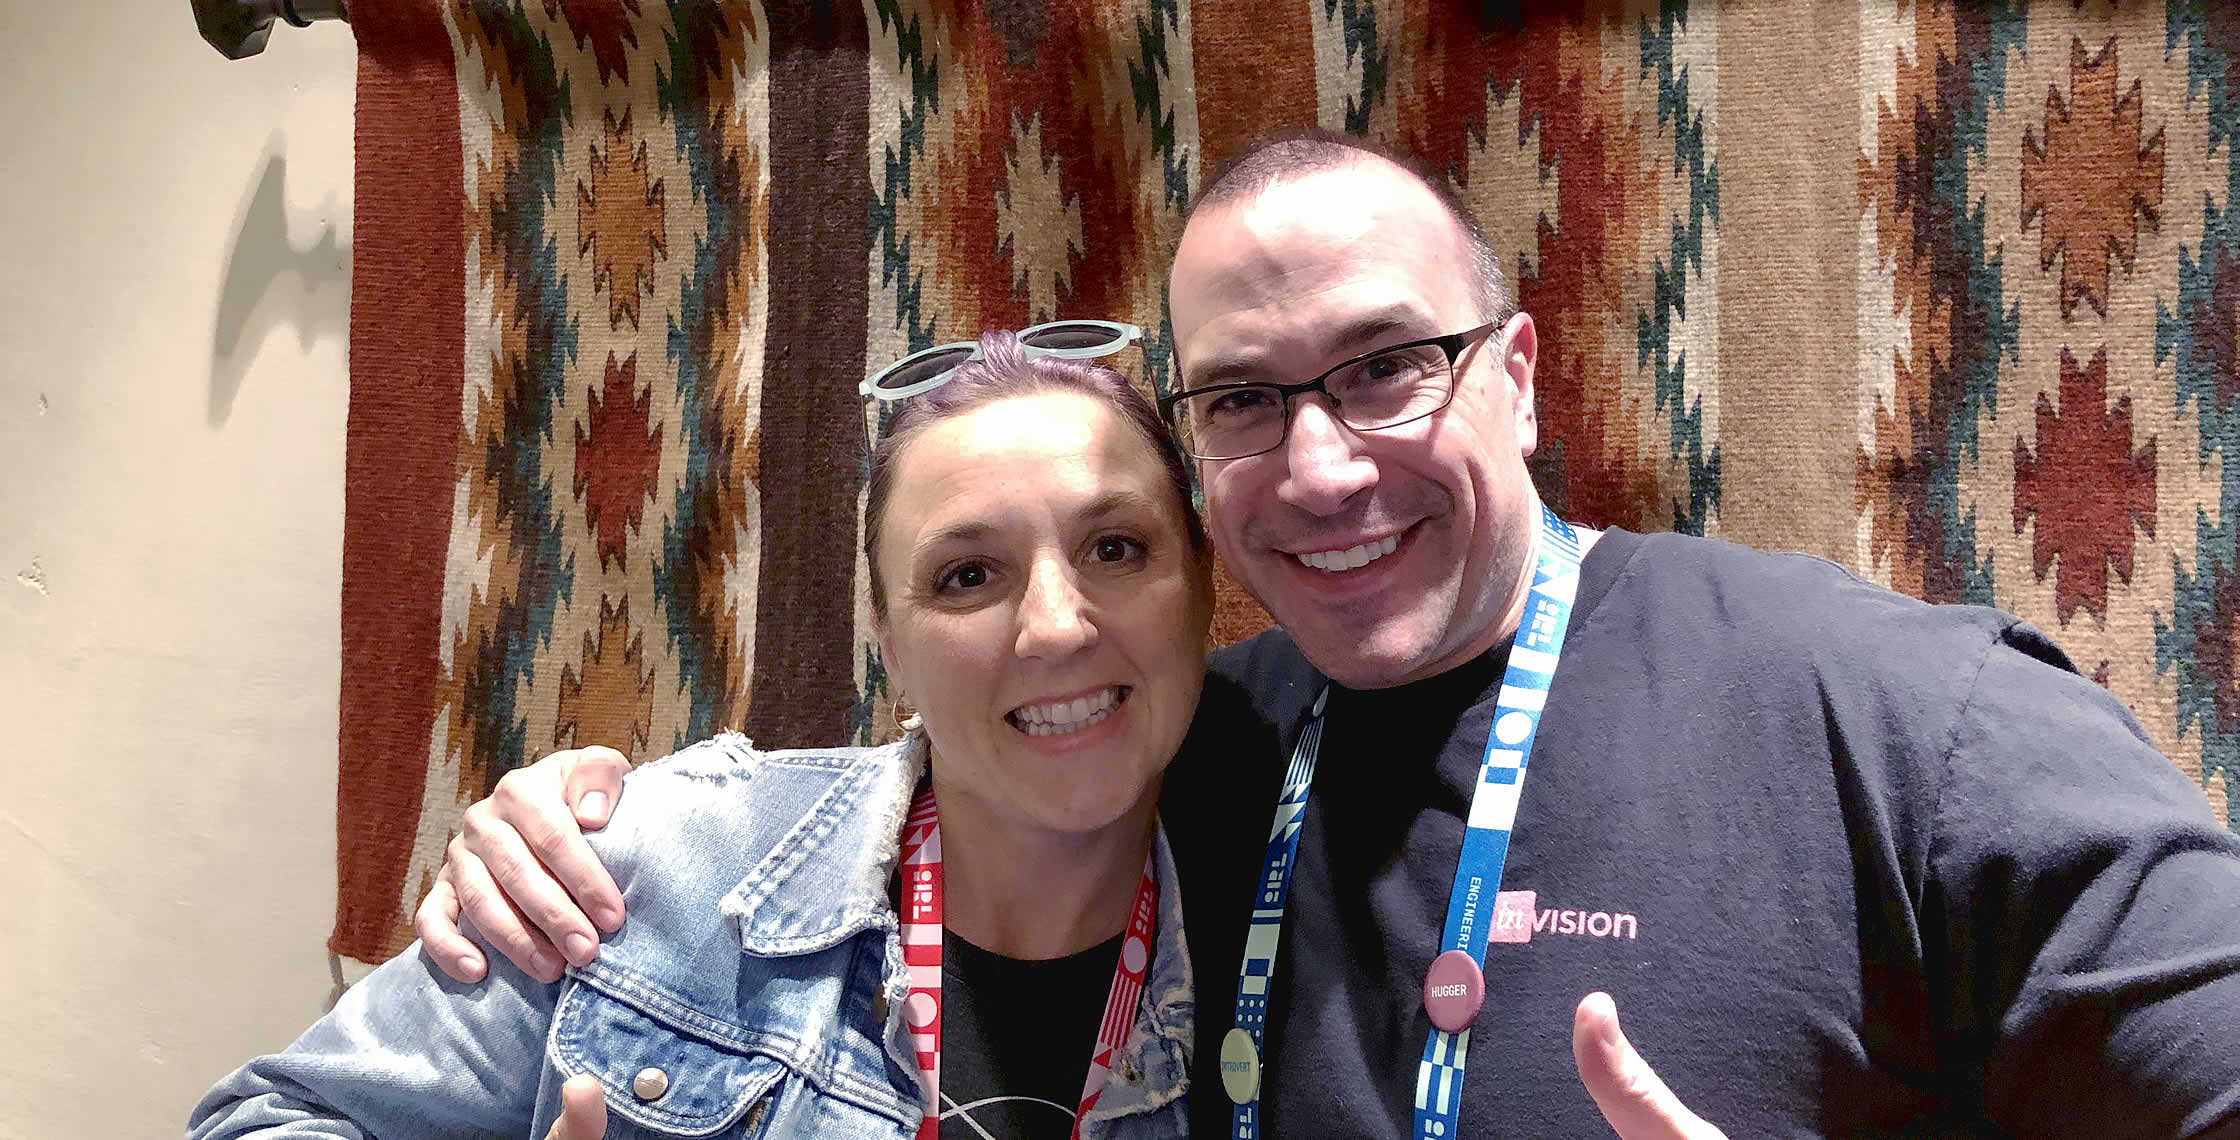 Ben Nadel at InVision In Real Life (IRL) 2019 (Phoenix, AZ) with: Katie Glenn